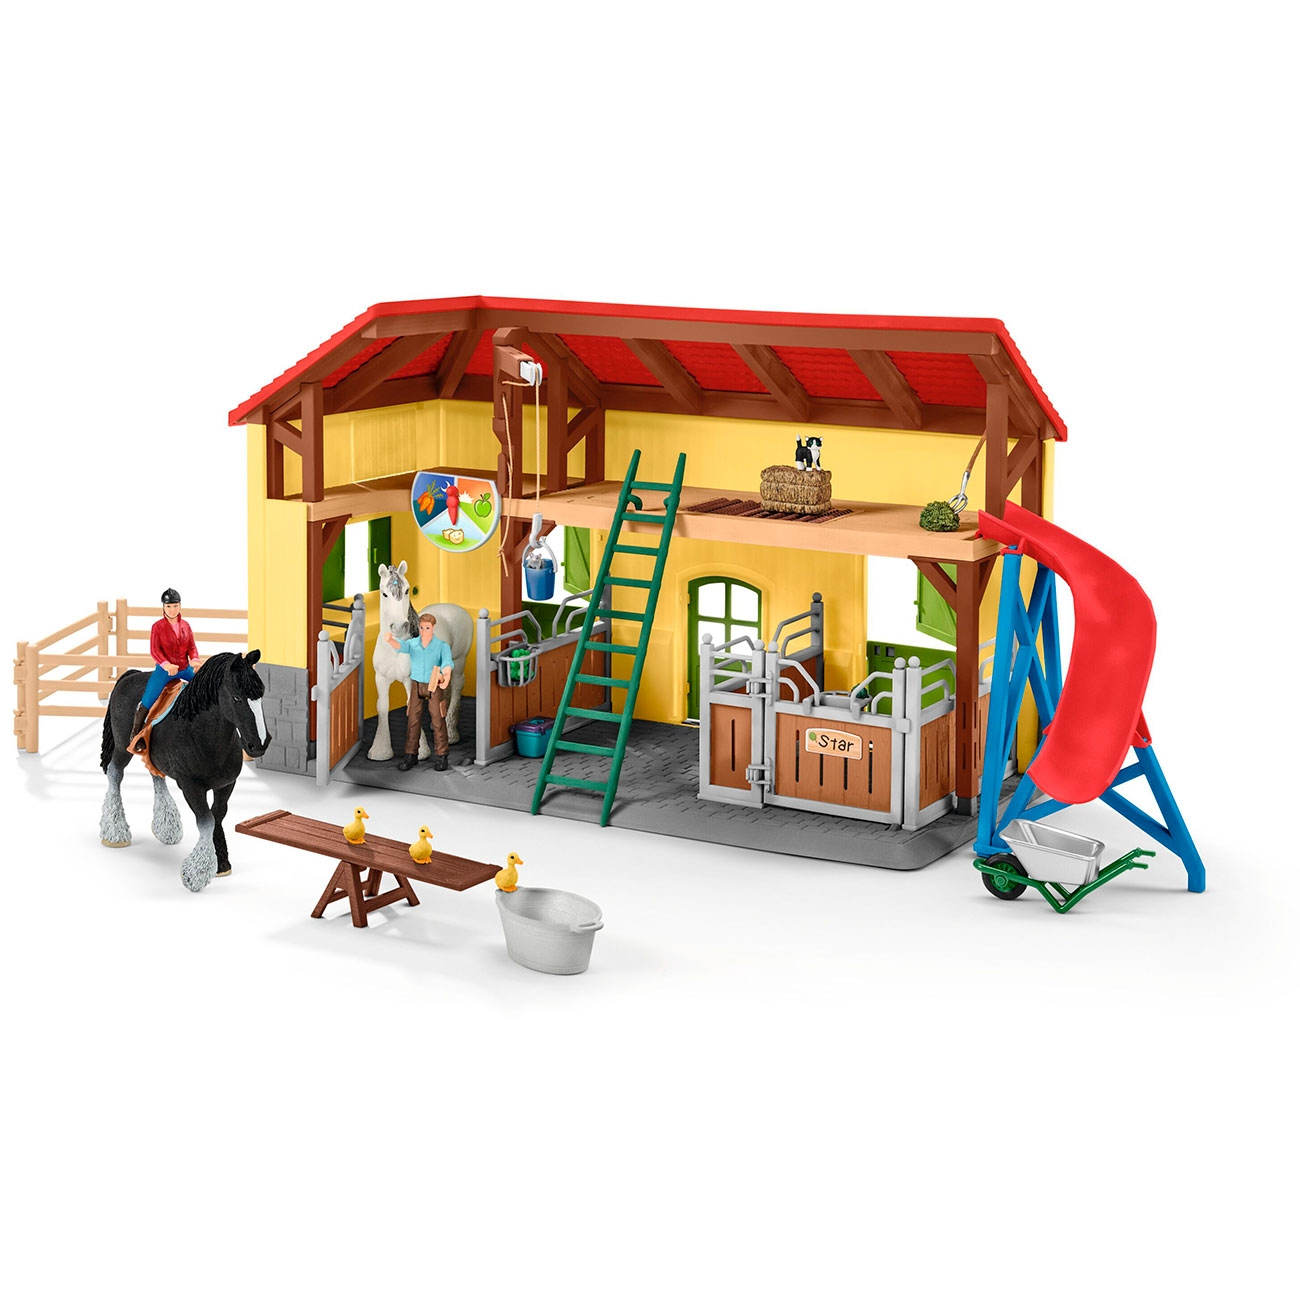 schleich-farm-world-horse-stable-hestestald-leg-toys-play-42485-1